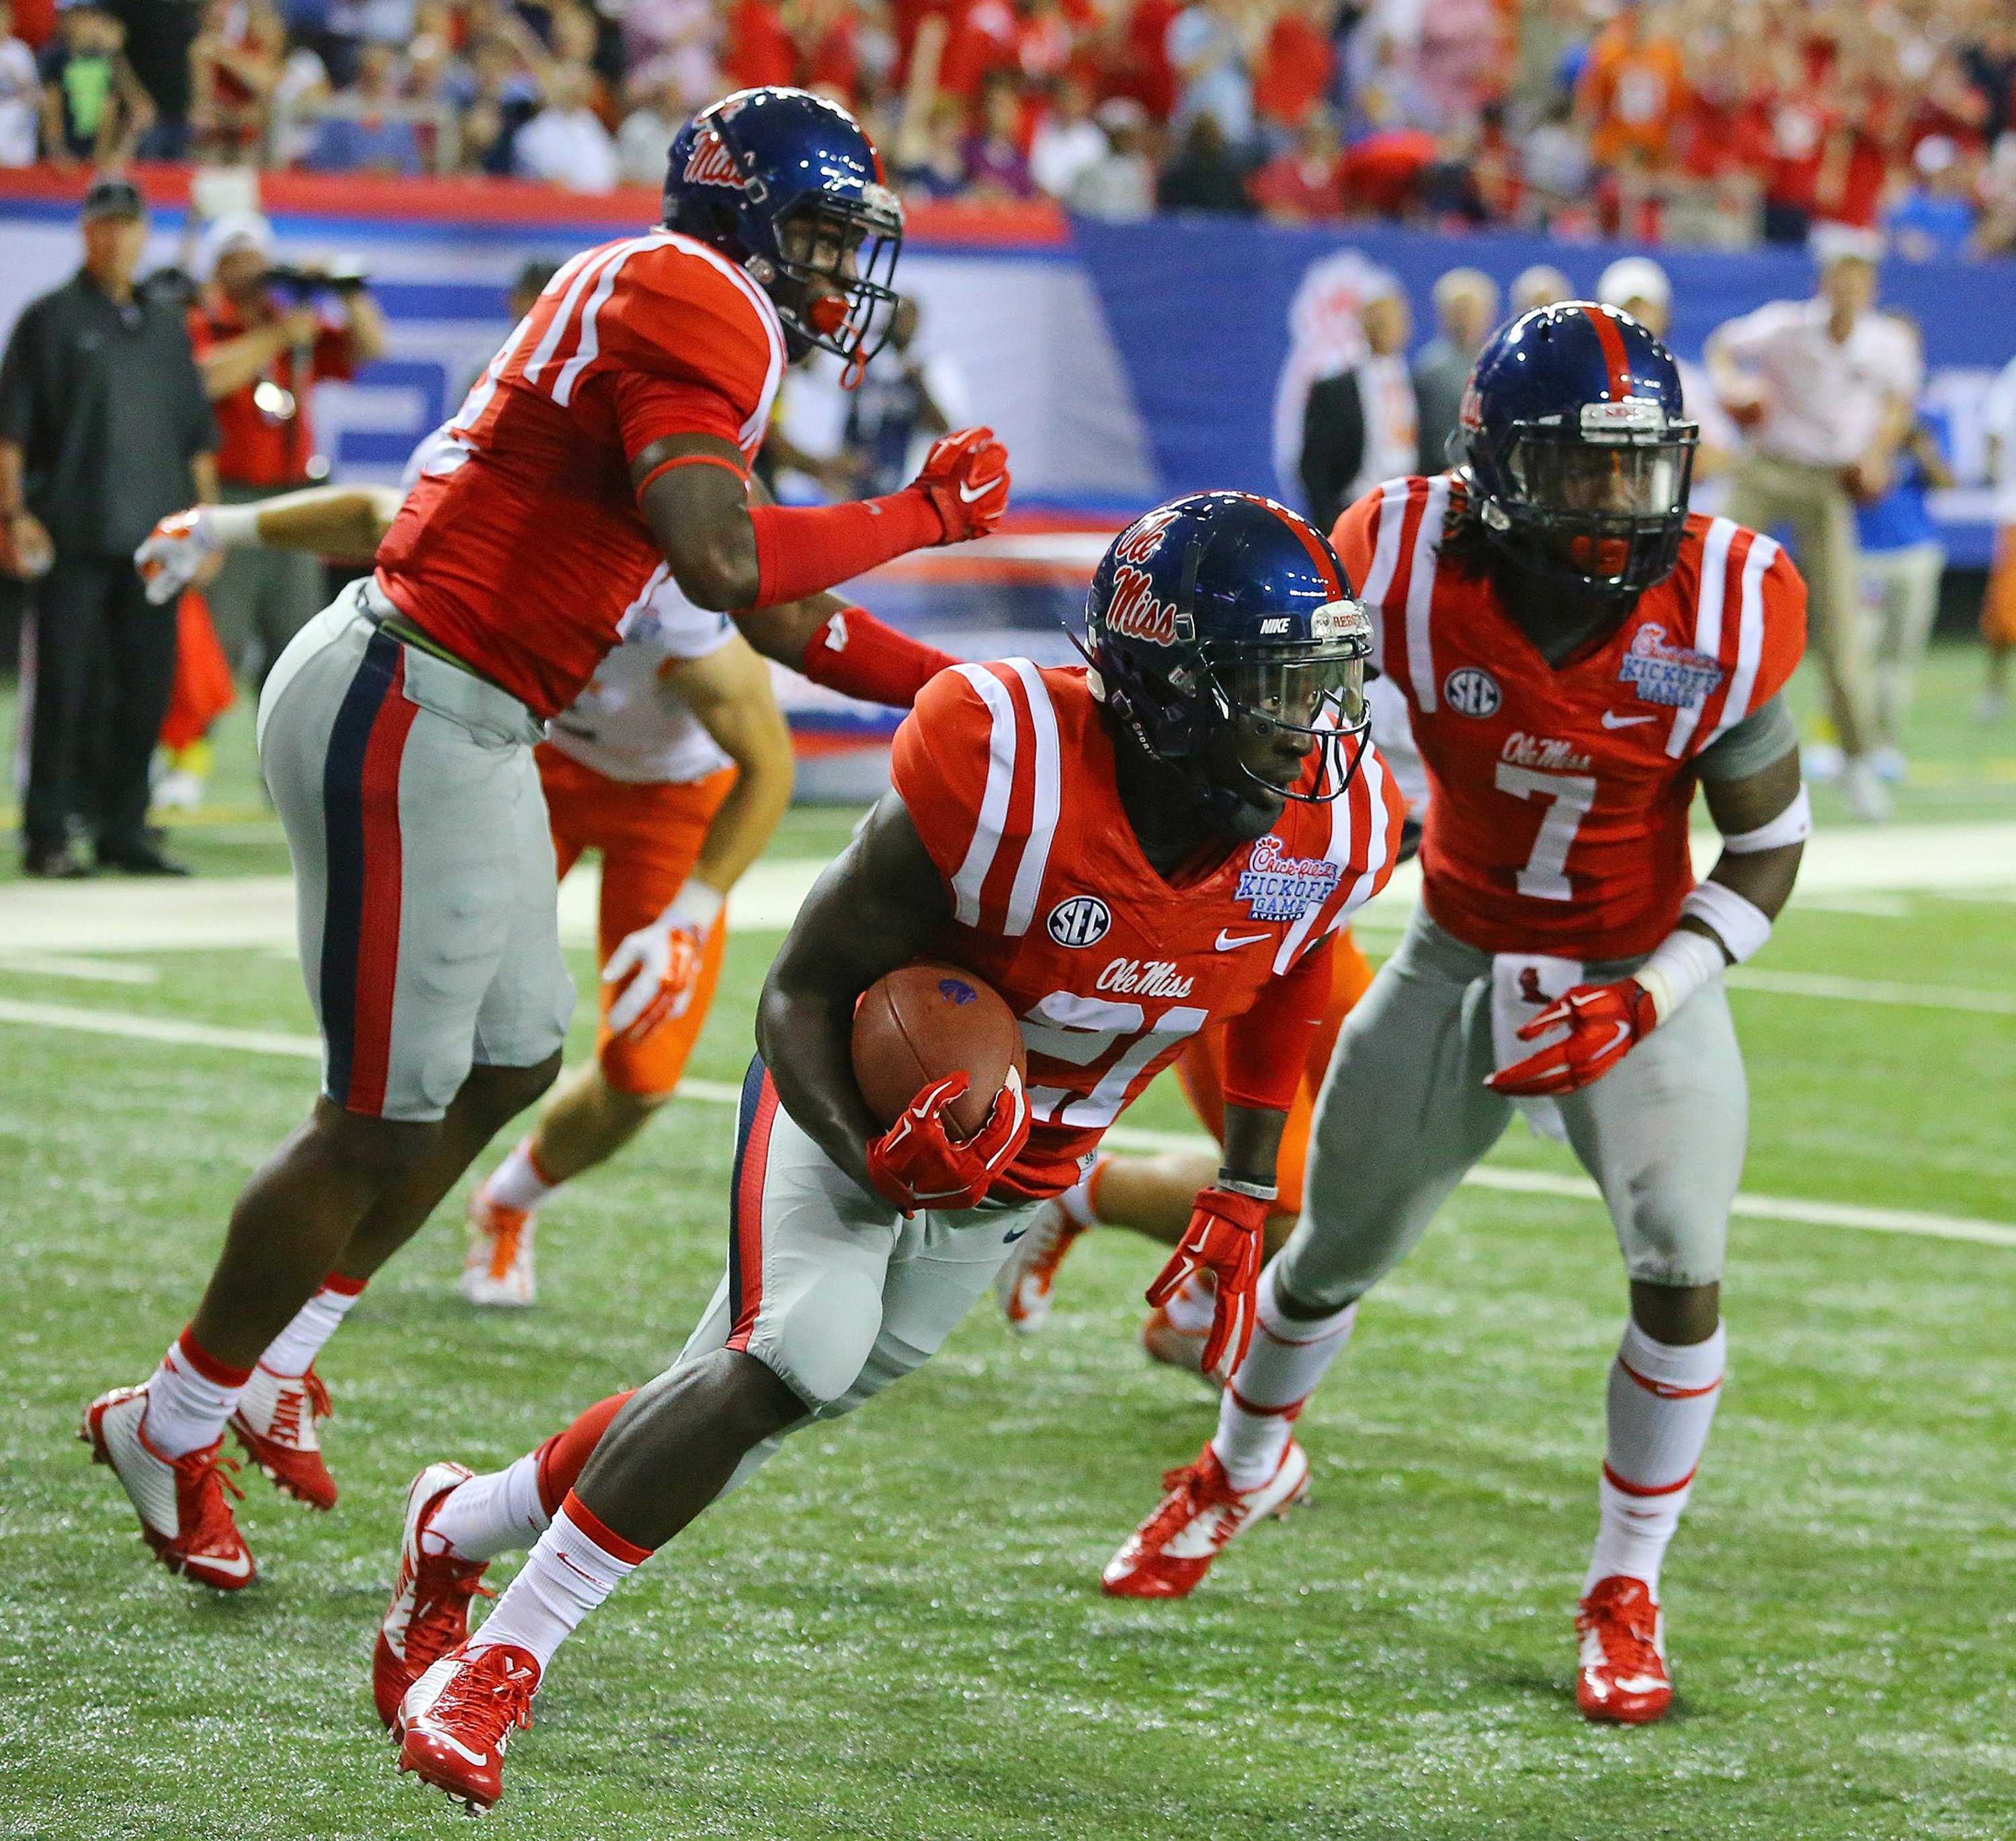 Ole Miss and Mississippi state have captured the headlines of college football thus far. Photo courtesy of Tribune News Service.